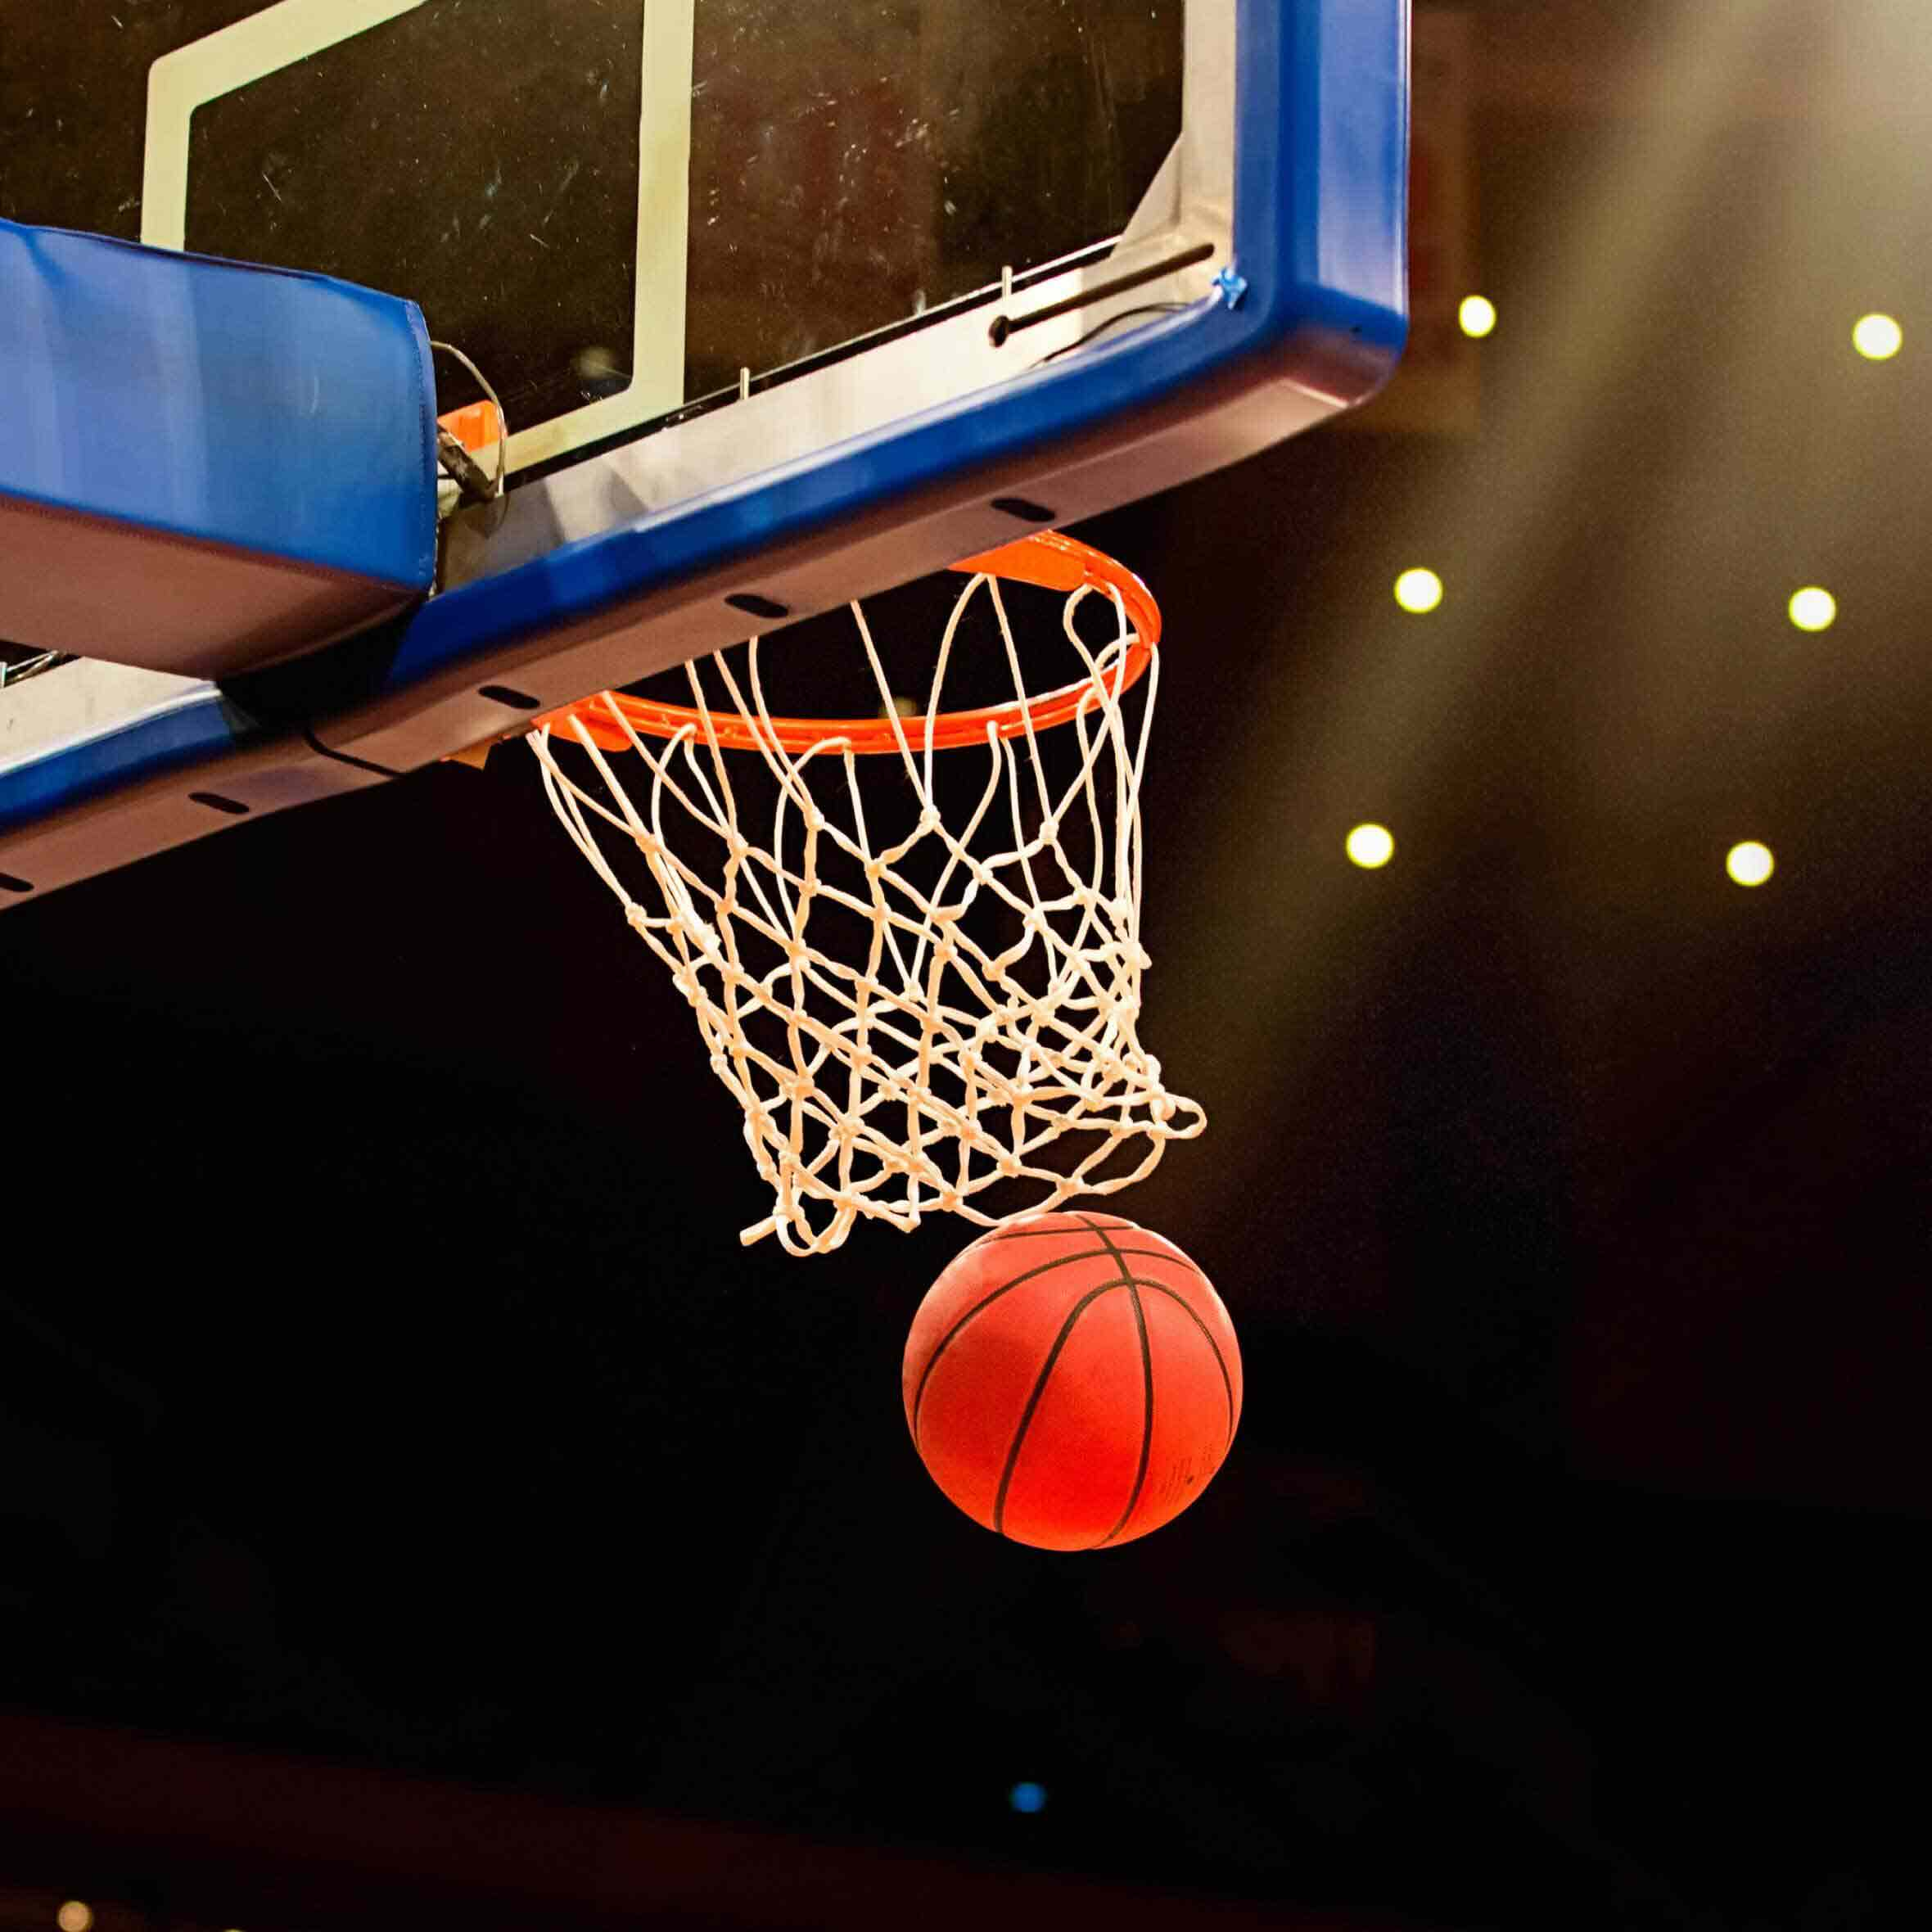 A basketball travels through a hoop during a game between professional NBA teams like the Phoenix Suns